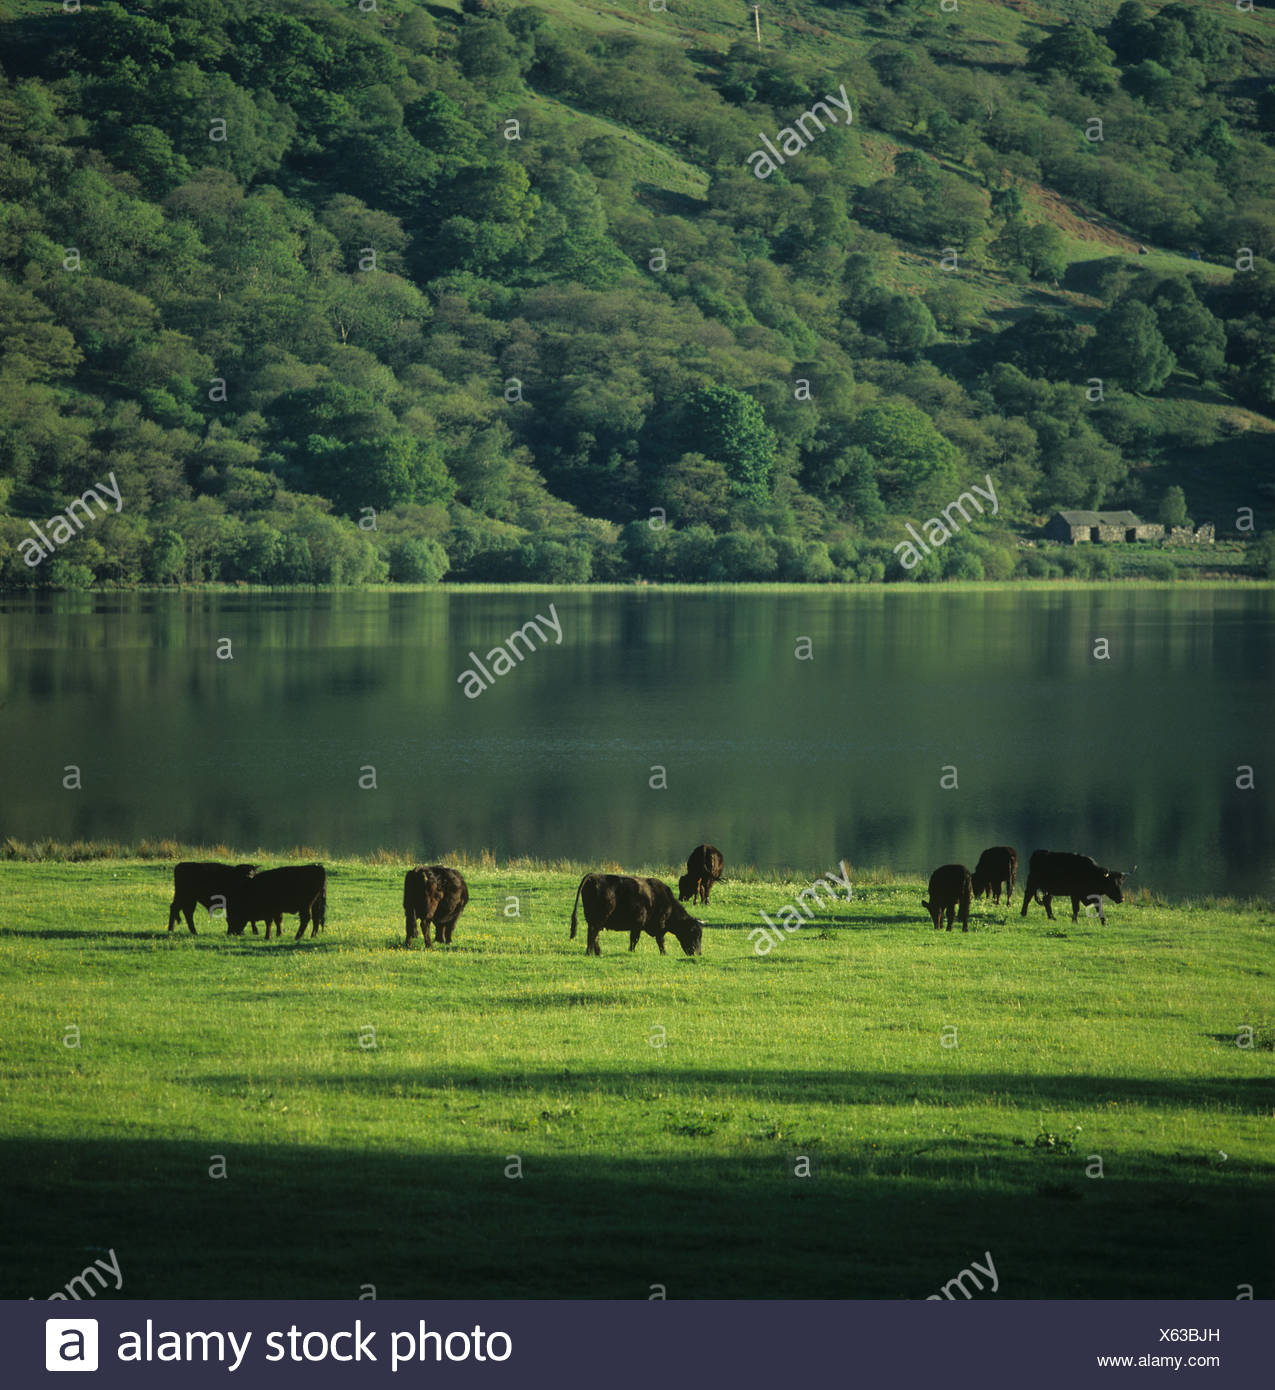 Welsh Black cattle grazing by Snowdonia lake in early summer - Stock Image